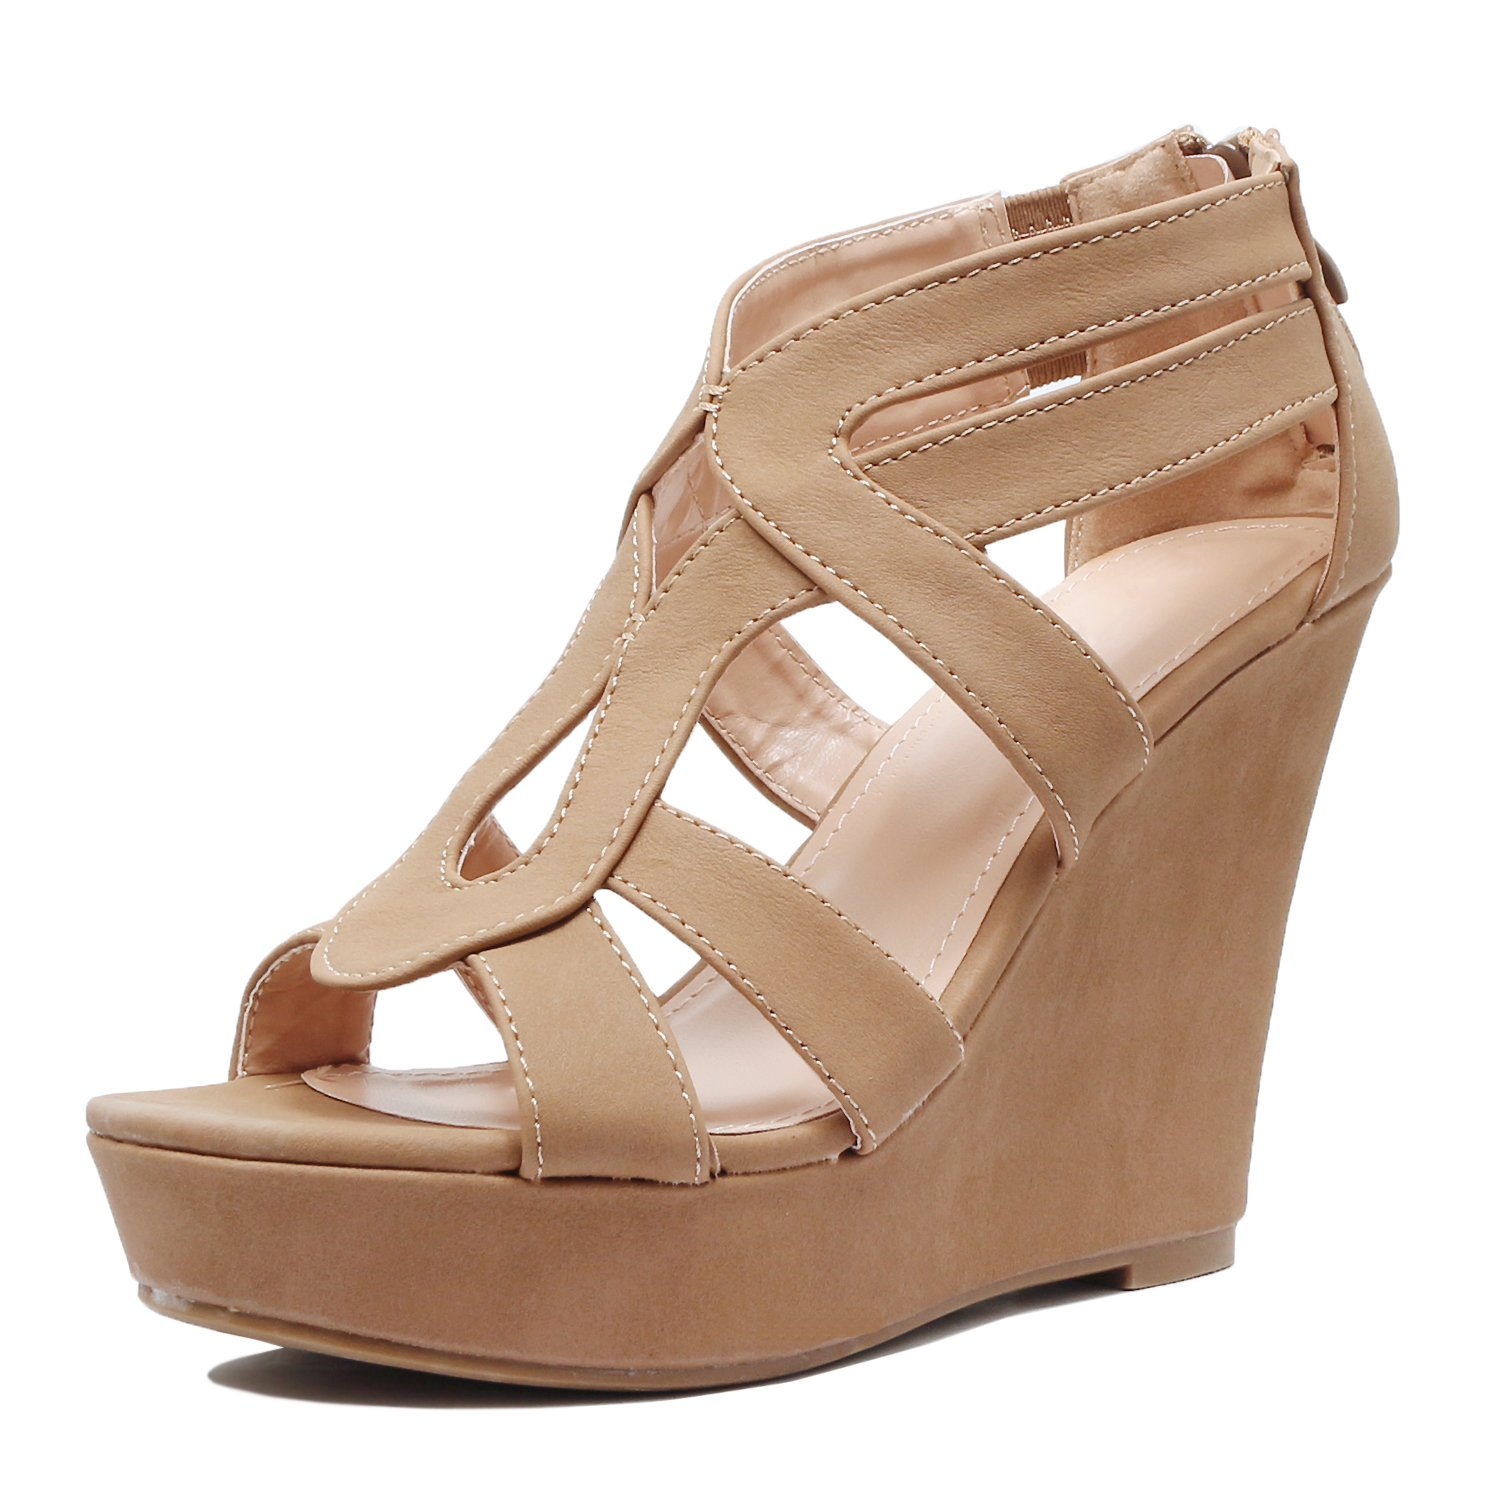 Guilty Shoes - Womens Gladiator Strappy Open Toe Comfort Platform Wedge Sandals (6 B(M) US, Tanv2 Pu)